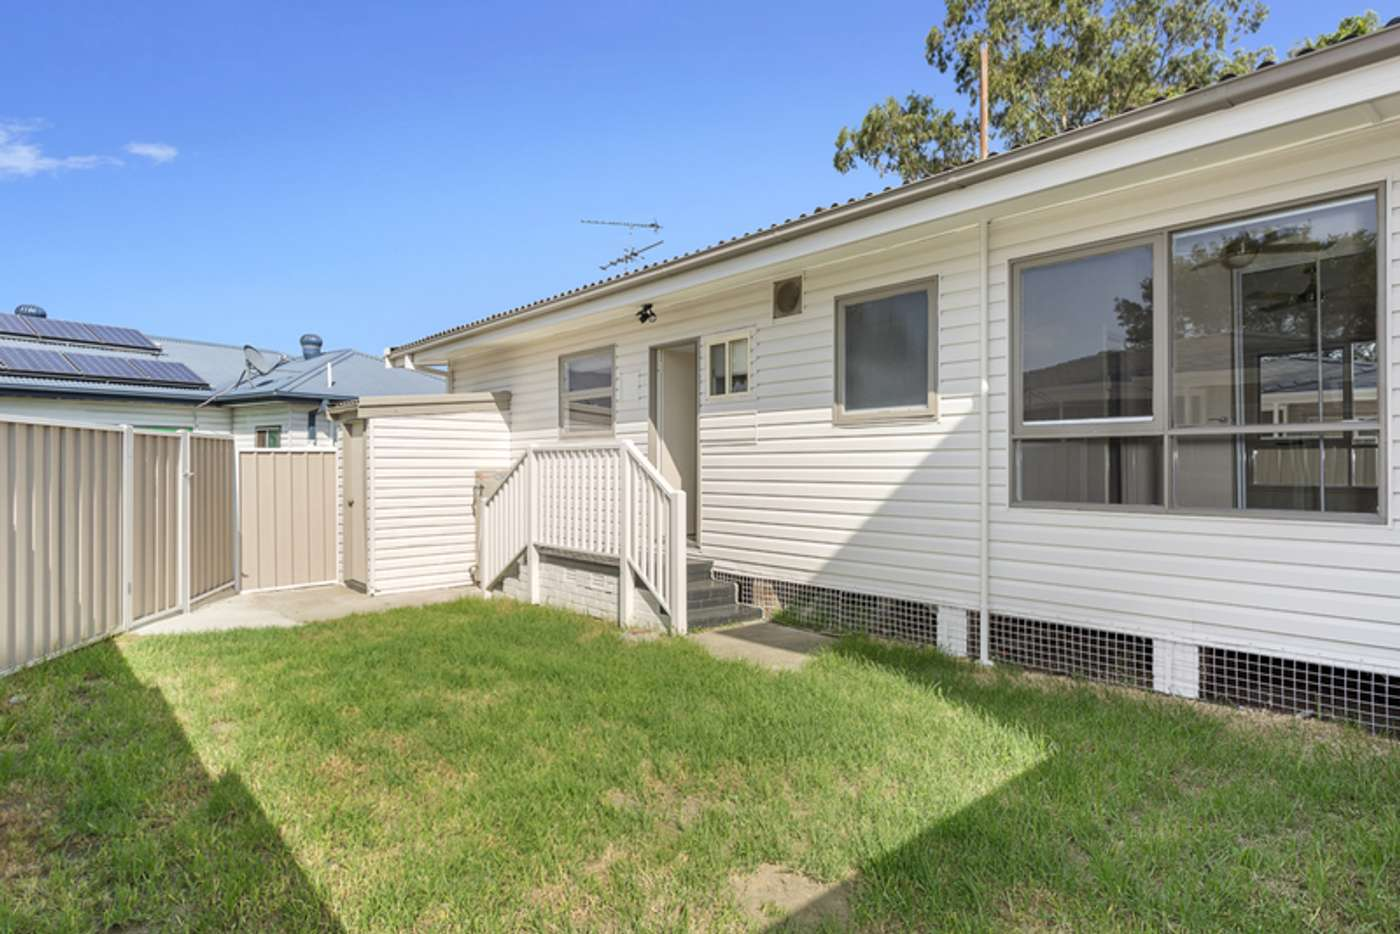 Seventh view of Homely house listing, 18 Walder Road, Hammondville NSW 2170